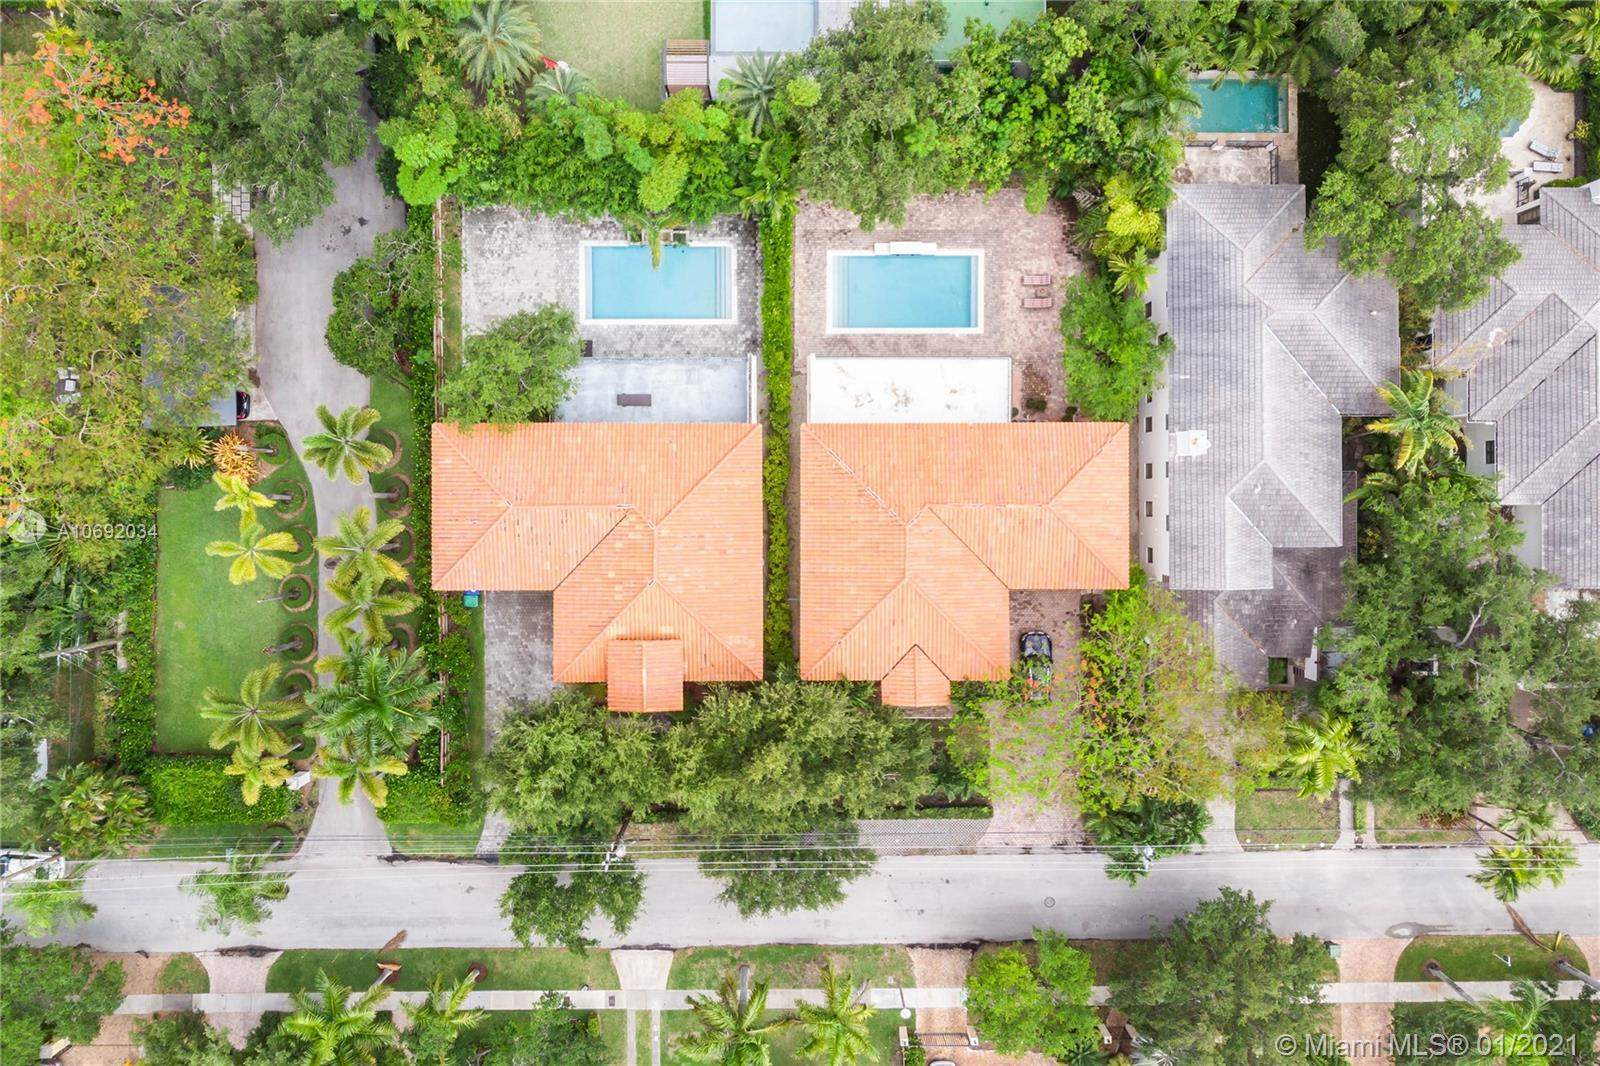 1650 Micanopy Ave, one of homes for sale in Coral Gables